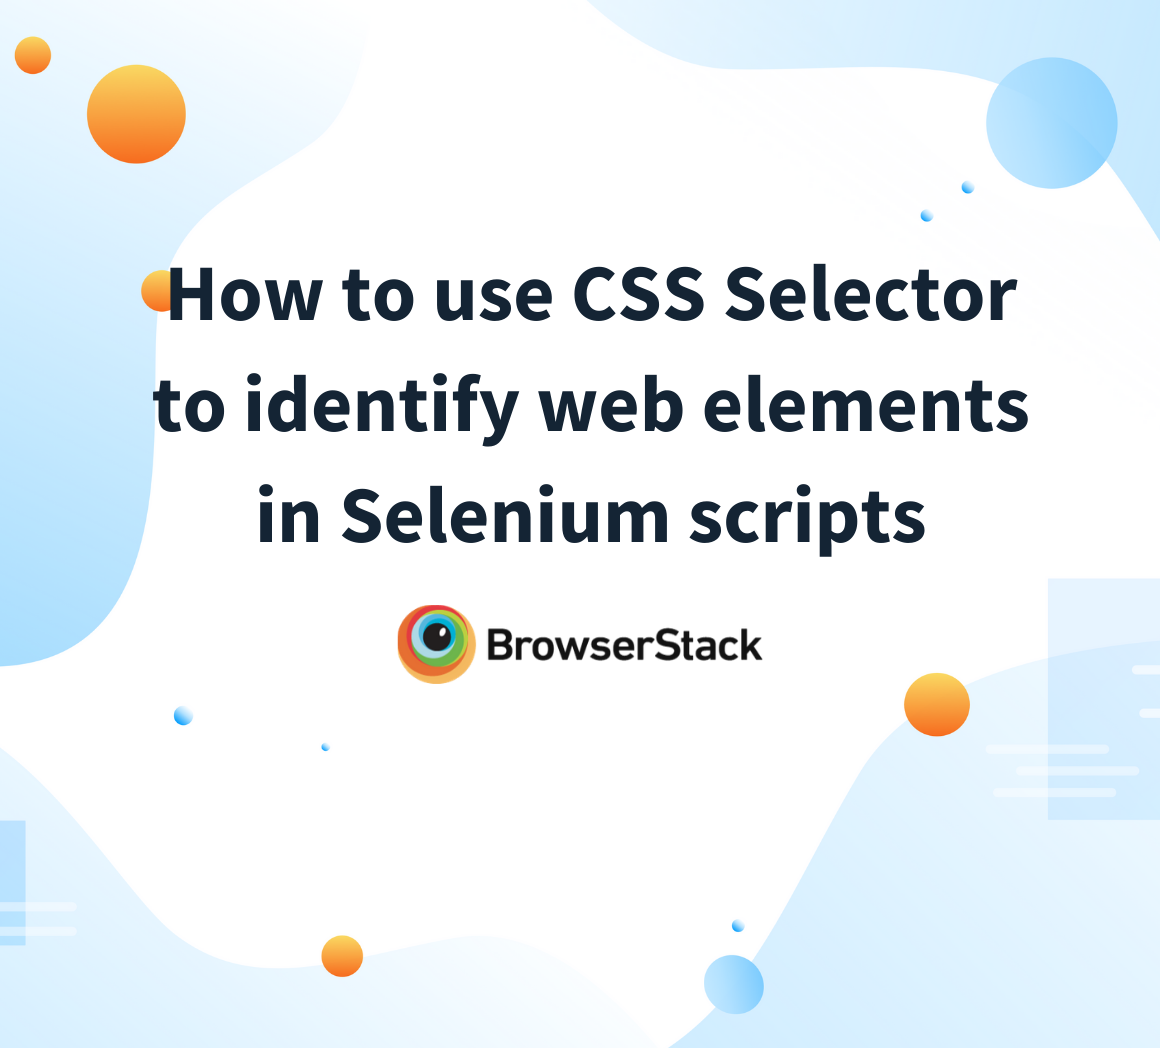 Use CSS selector to identify web elements in Selenium scripts